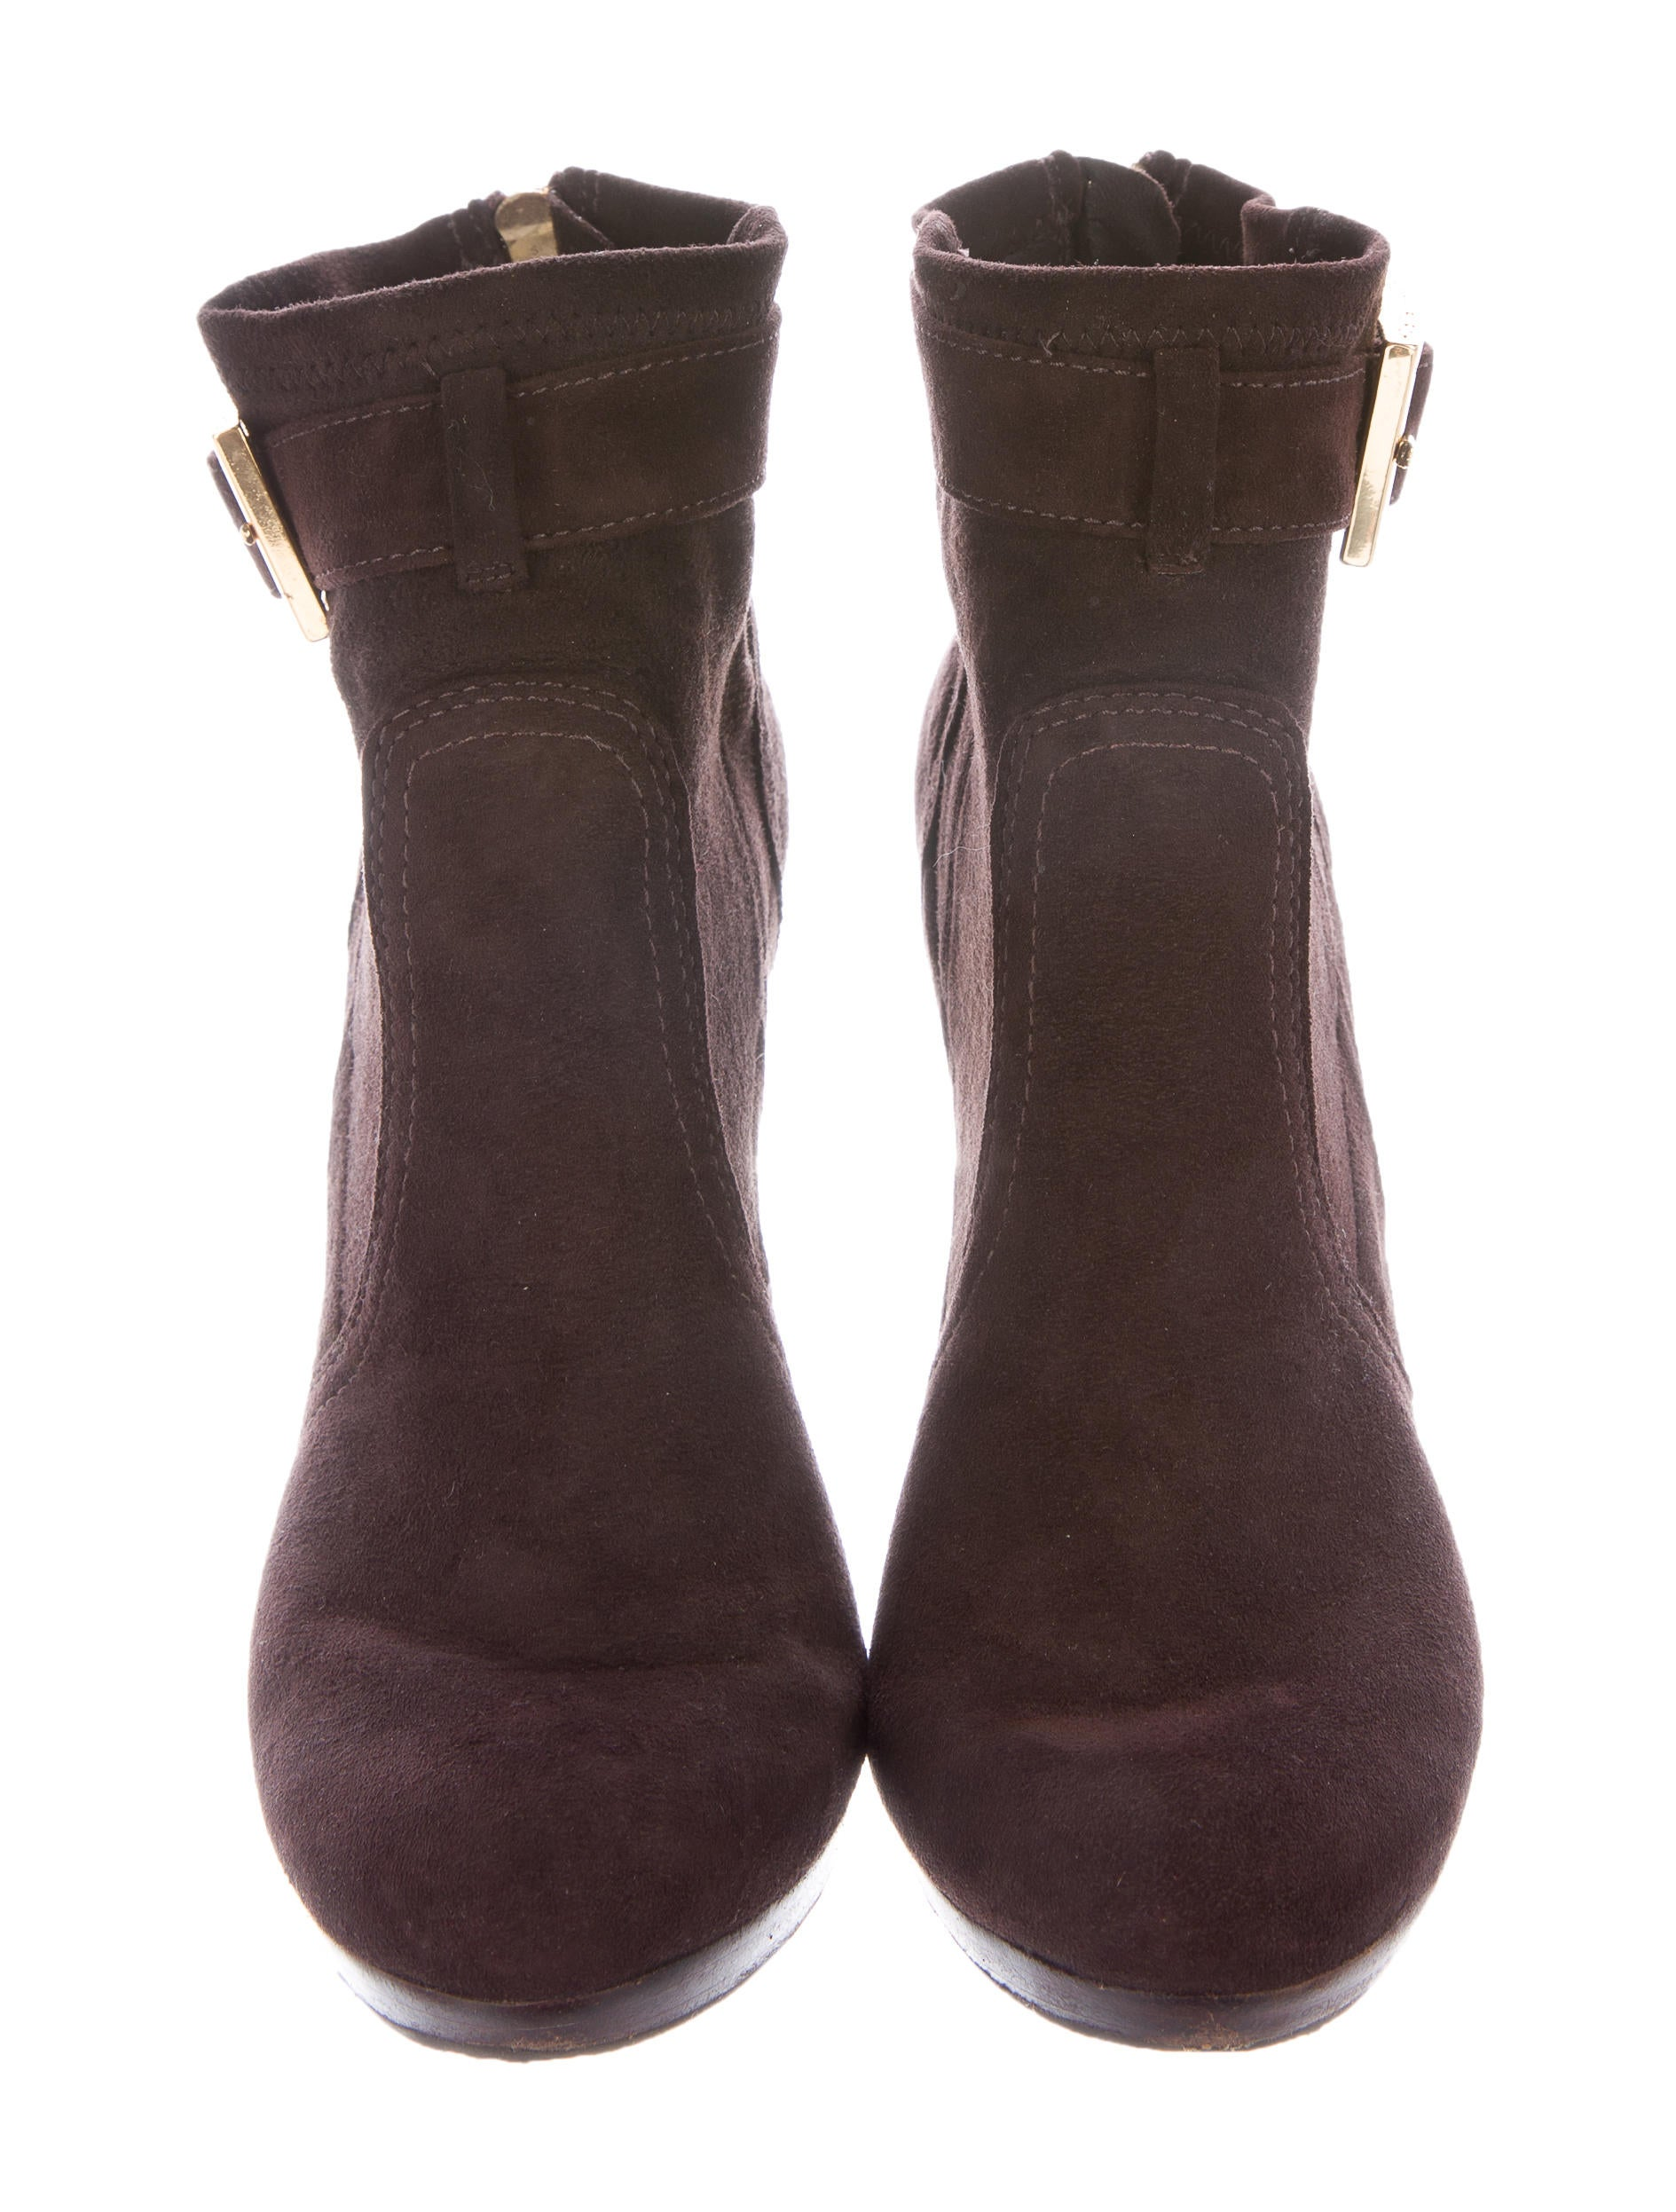 burch suede buckle accented ankle boots shoes